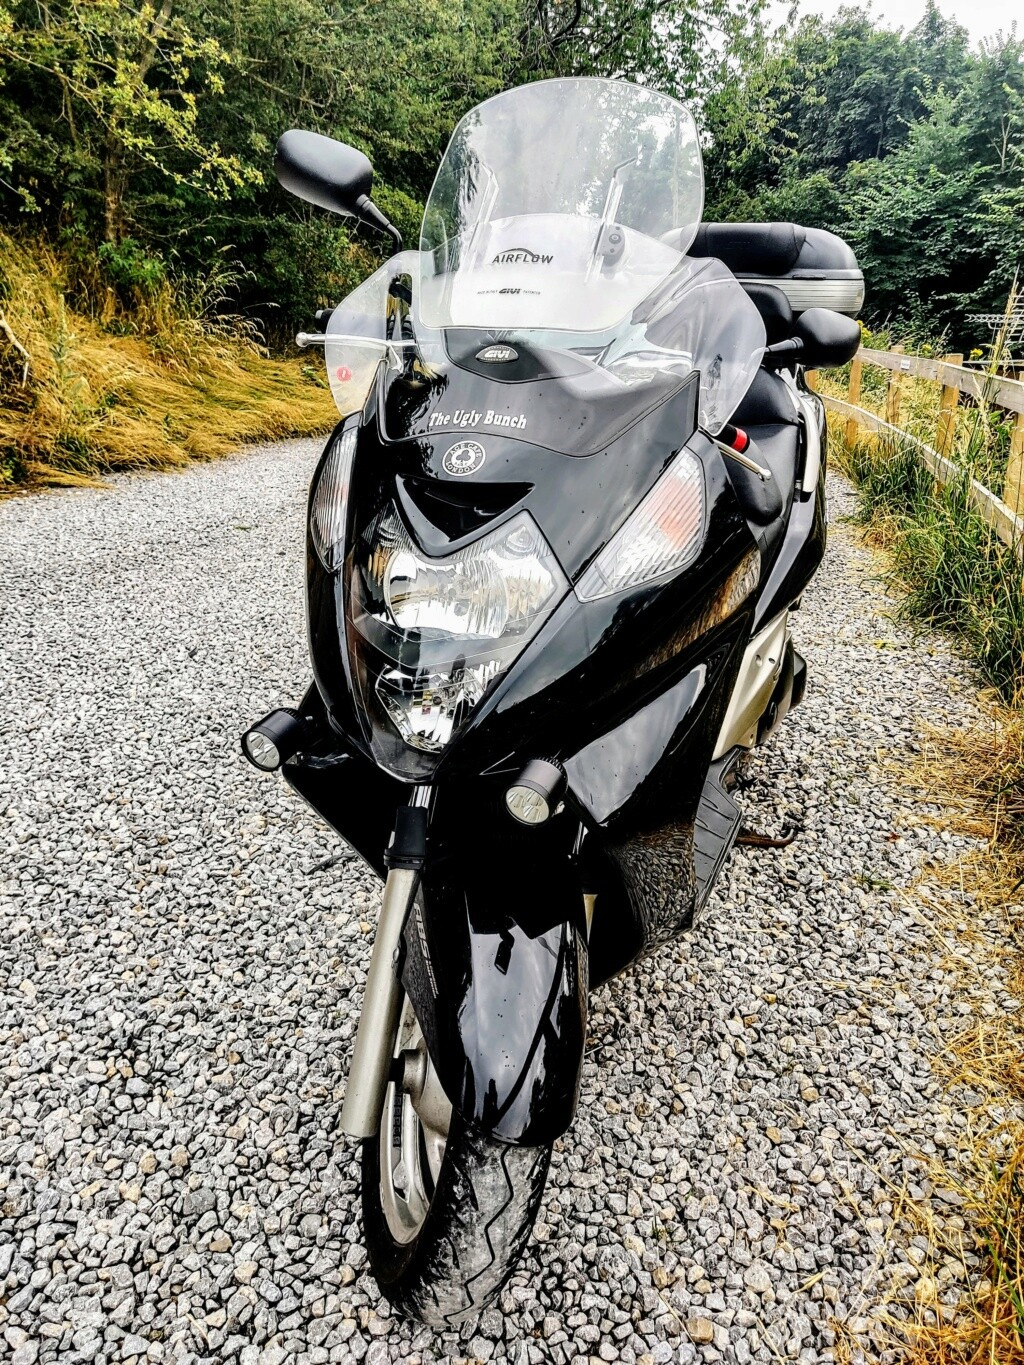 MikeO's Honda Silverwing moves on Img_2019